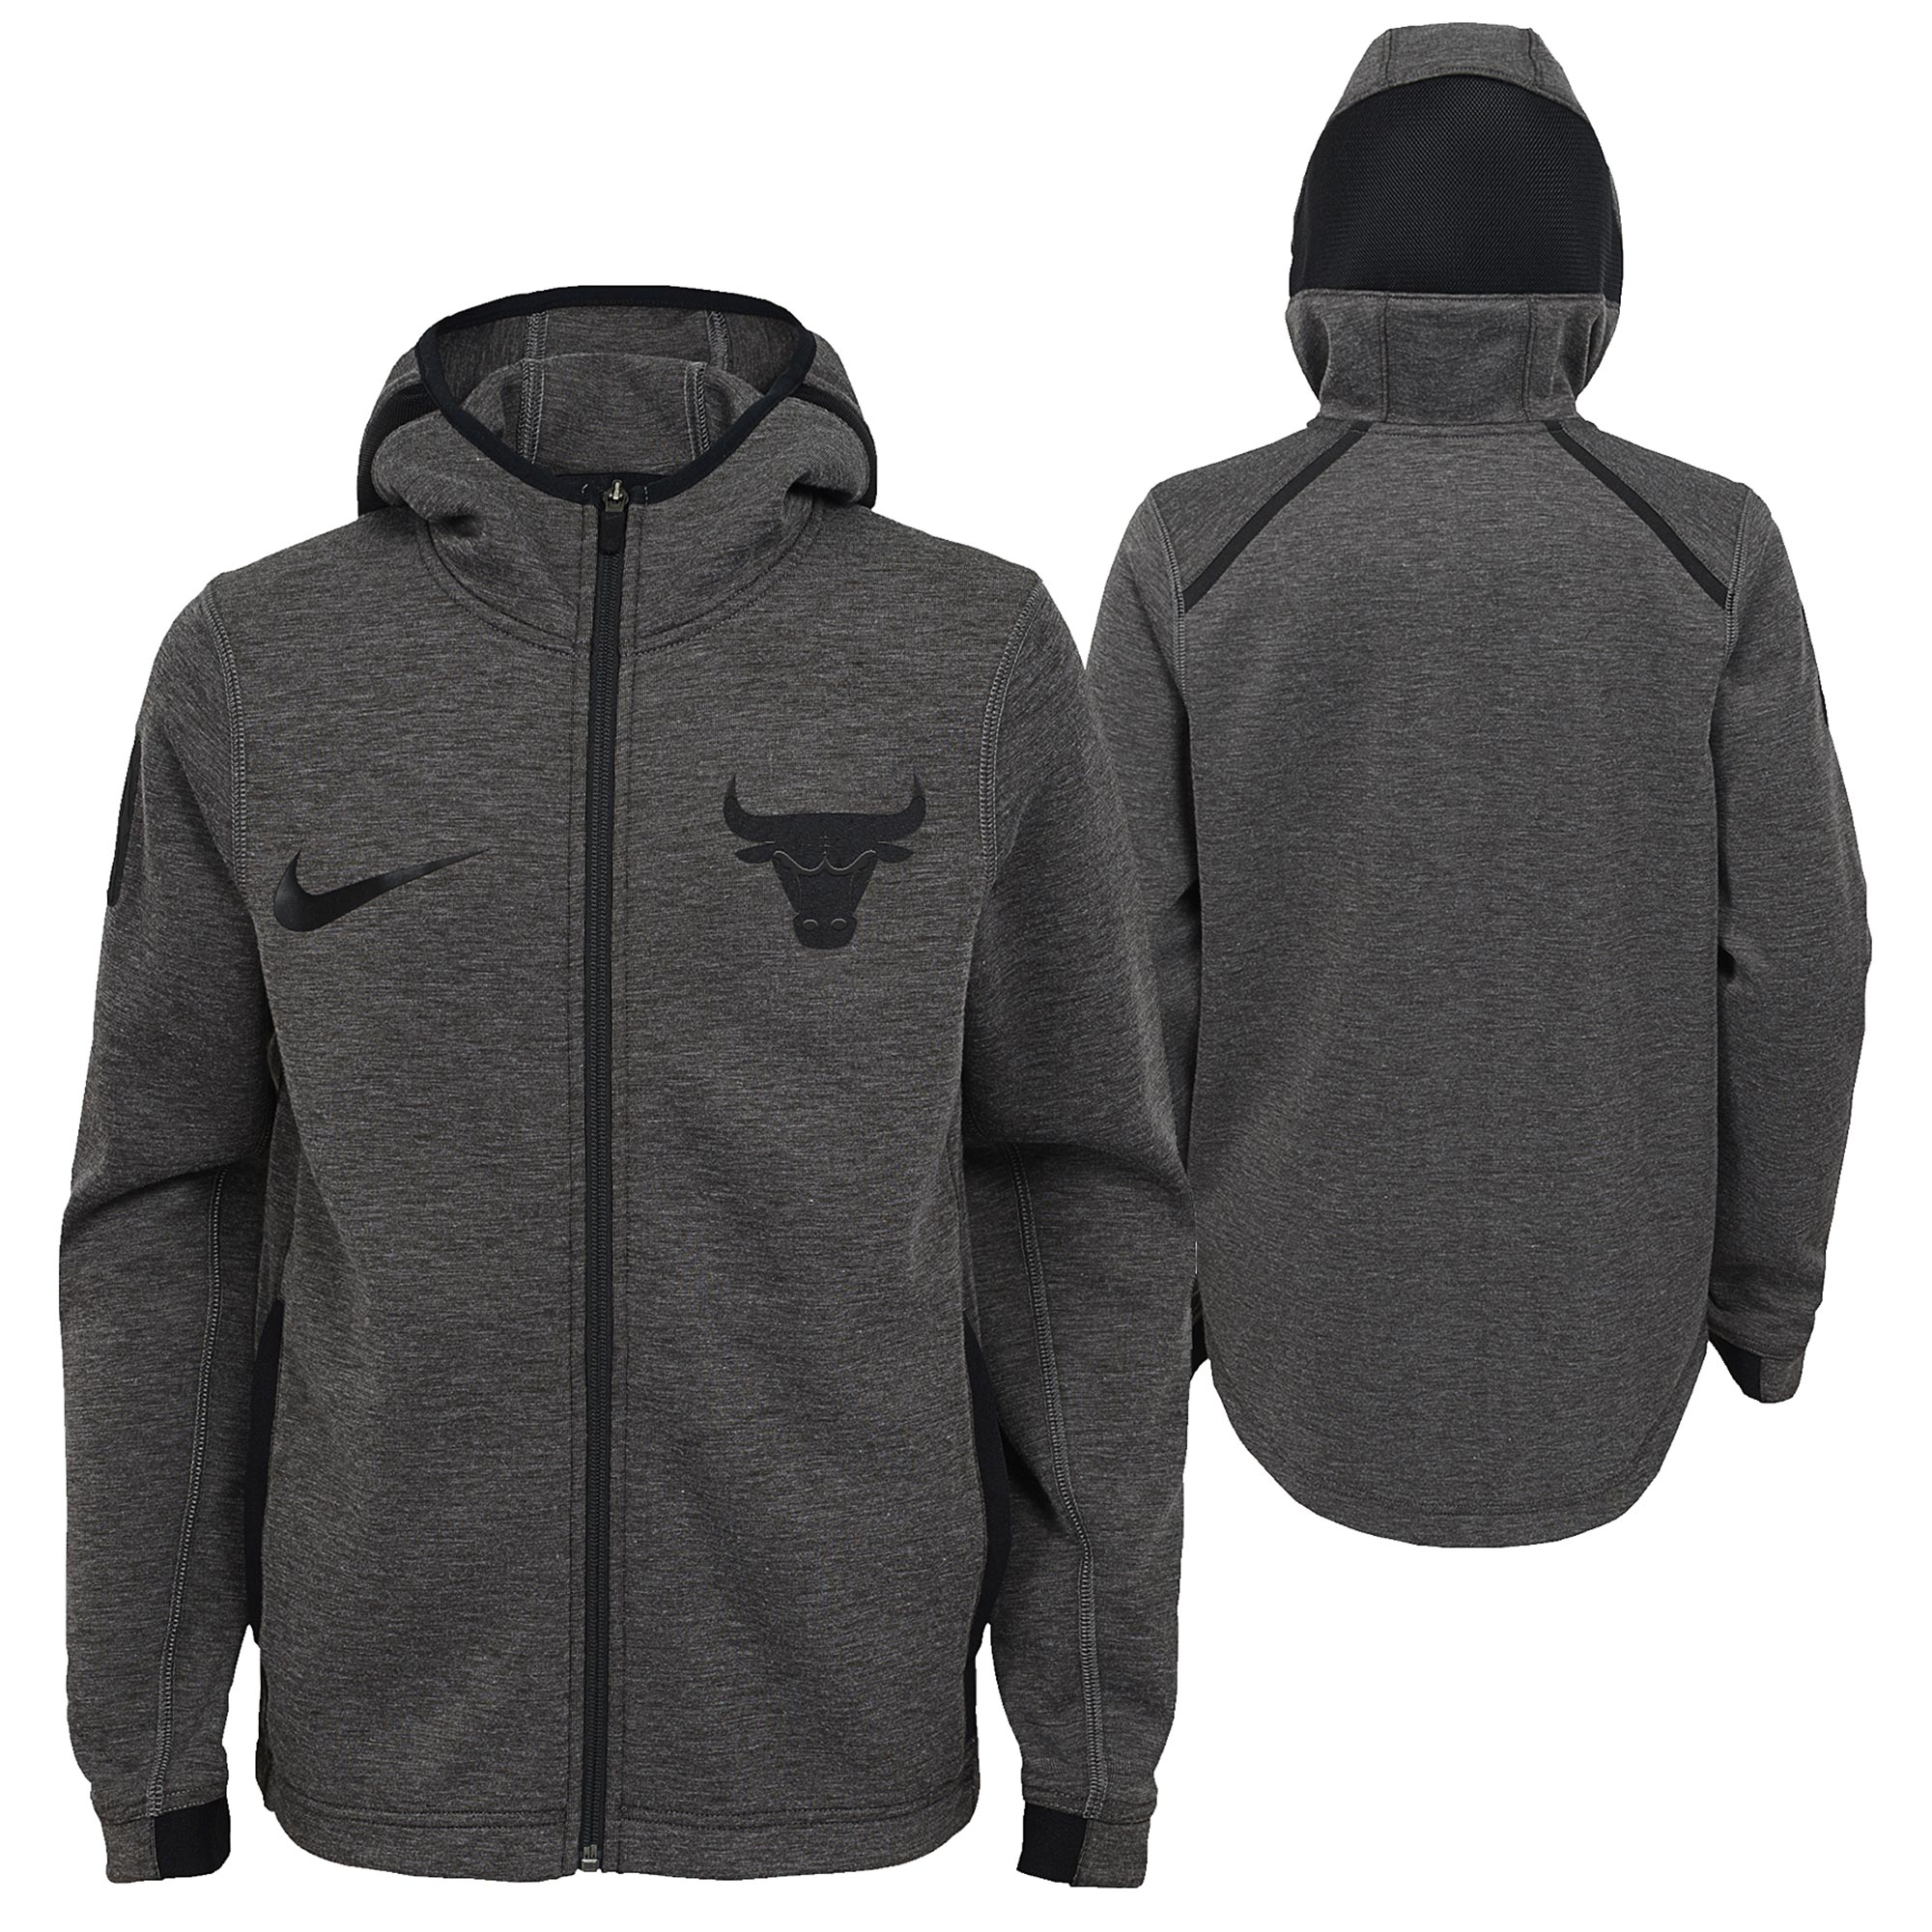 Outerstuff EMEA Ltd / Chicago Bulls Nike Showtime Therma Flex Hoodie - Youth